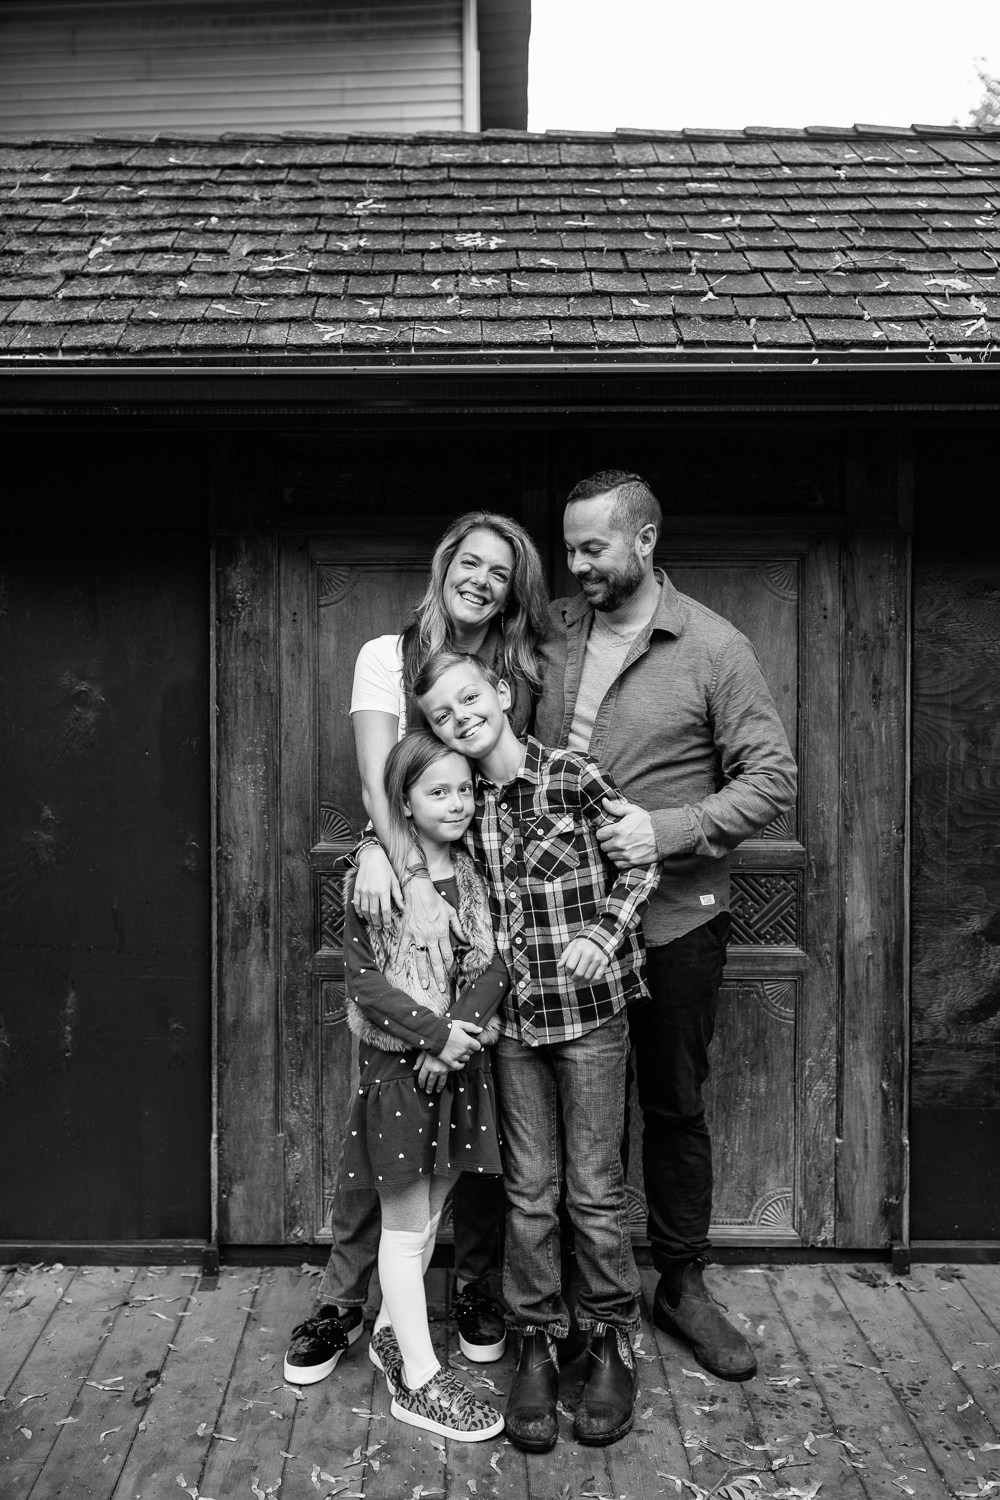 family of 4 standing on front of dark home with old doors, mom's arms around 7 year old girl's shoulders, 9 year old boy hugging sister, dad's hand on son smiling at him - Stouffville Lifestyle Photography